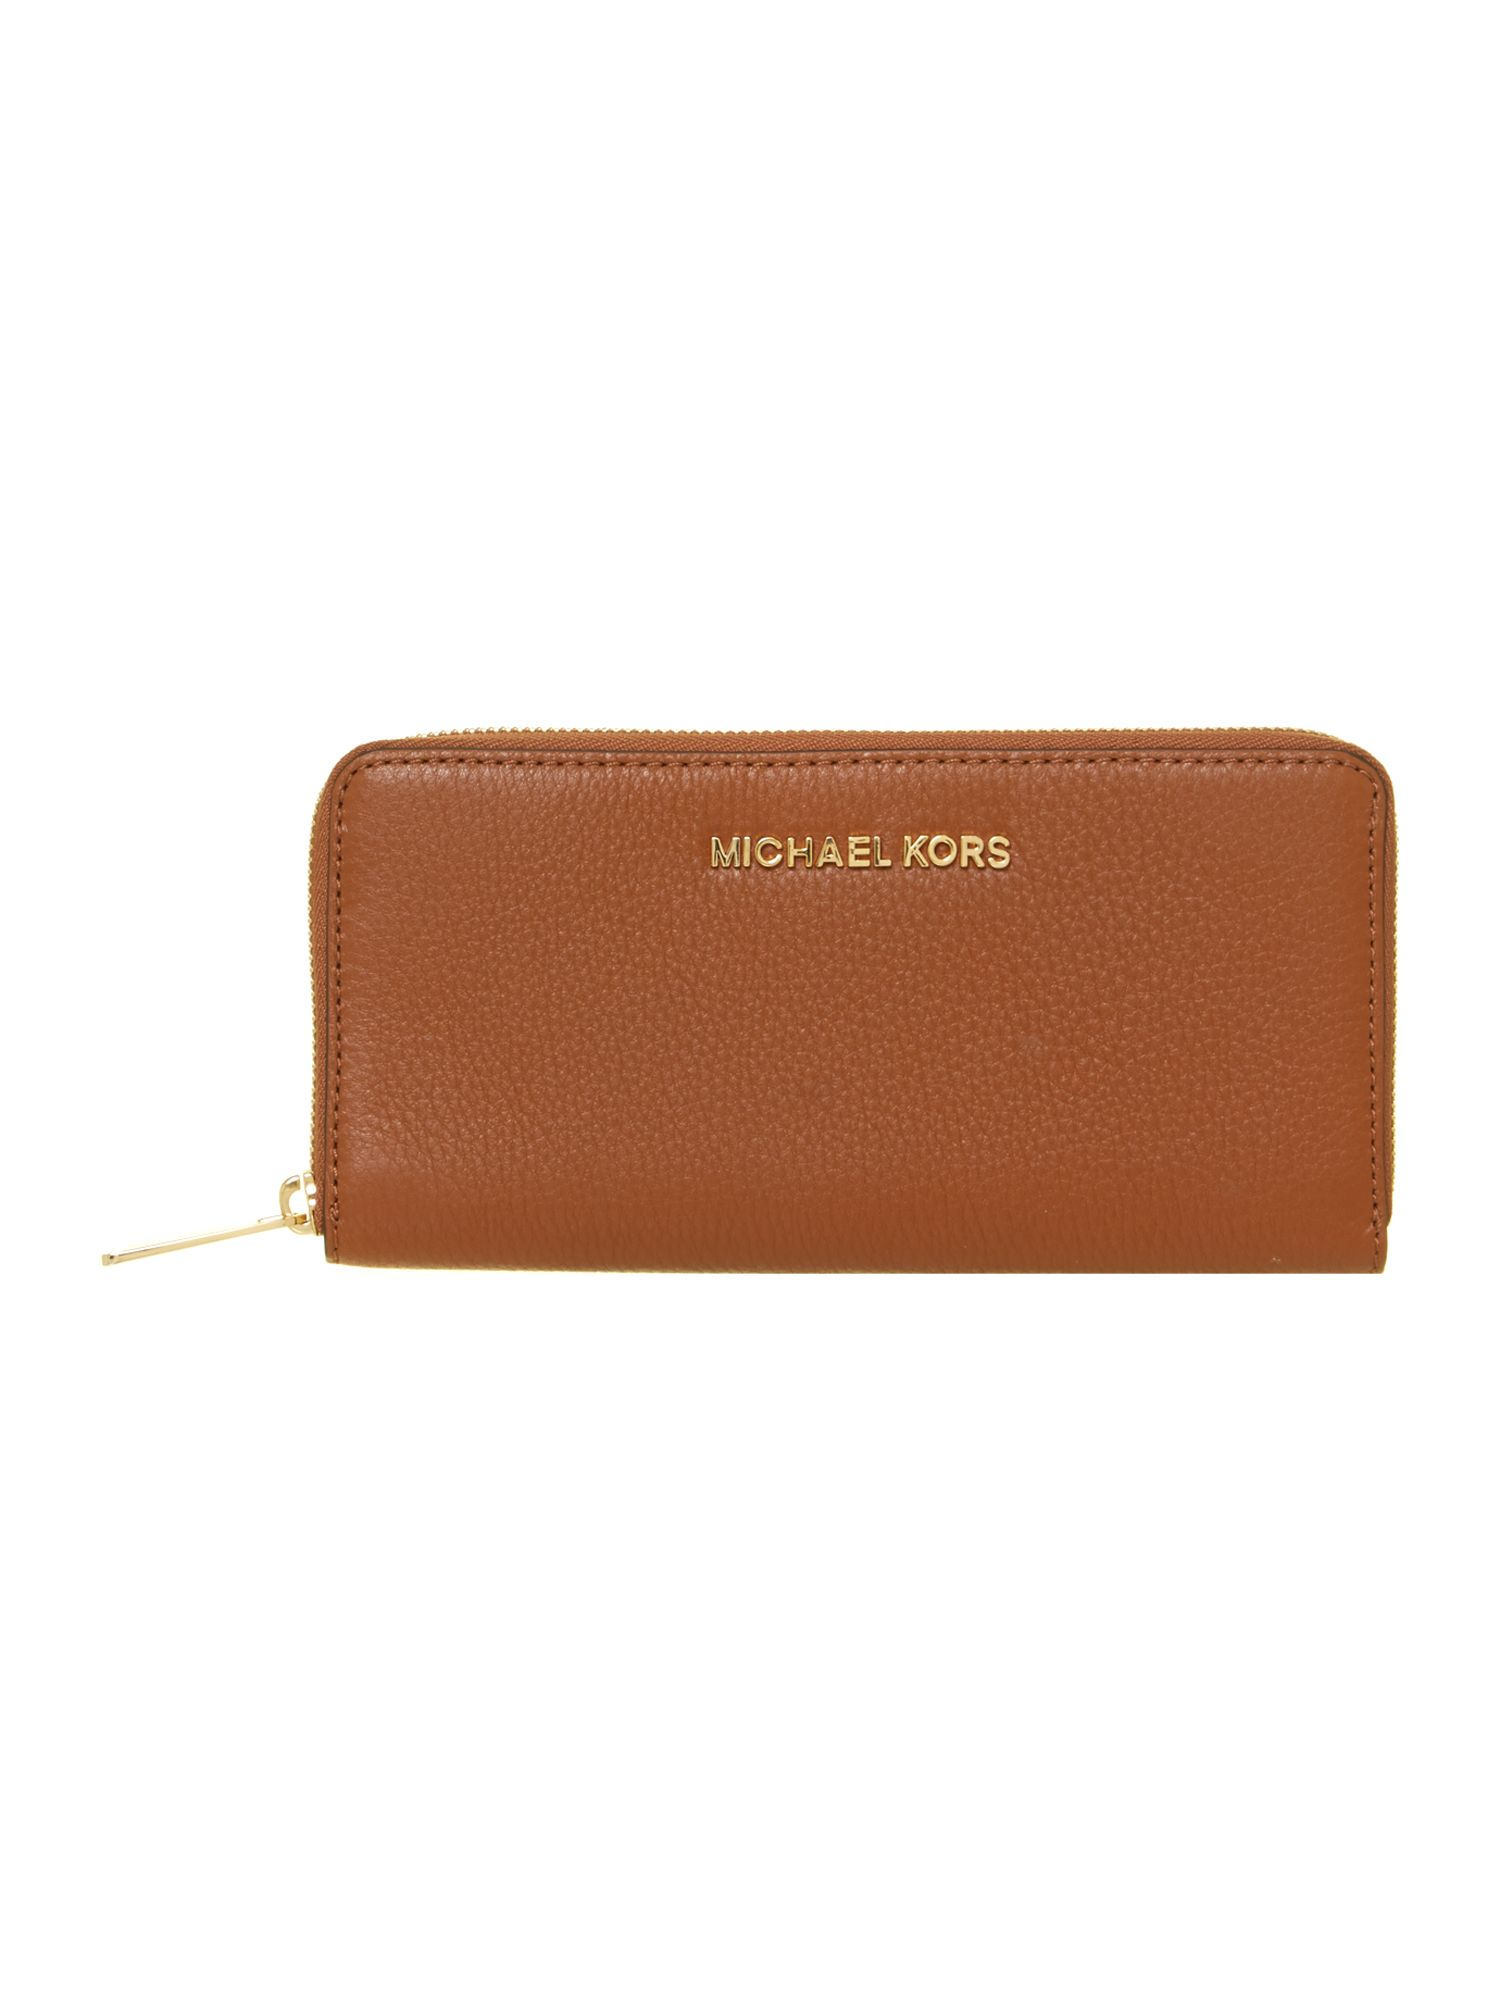 michael kors bedford large tan zip around purse house of fraser rh houseoffraser co uk